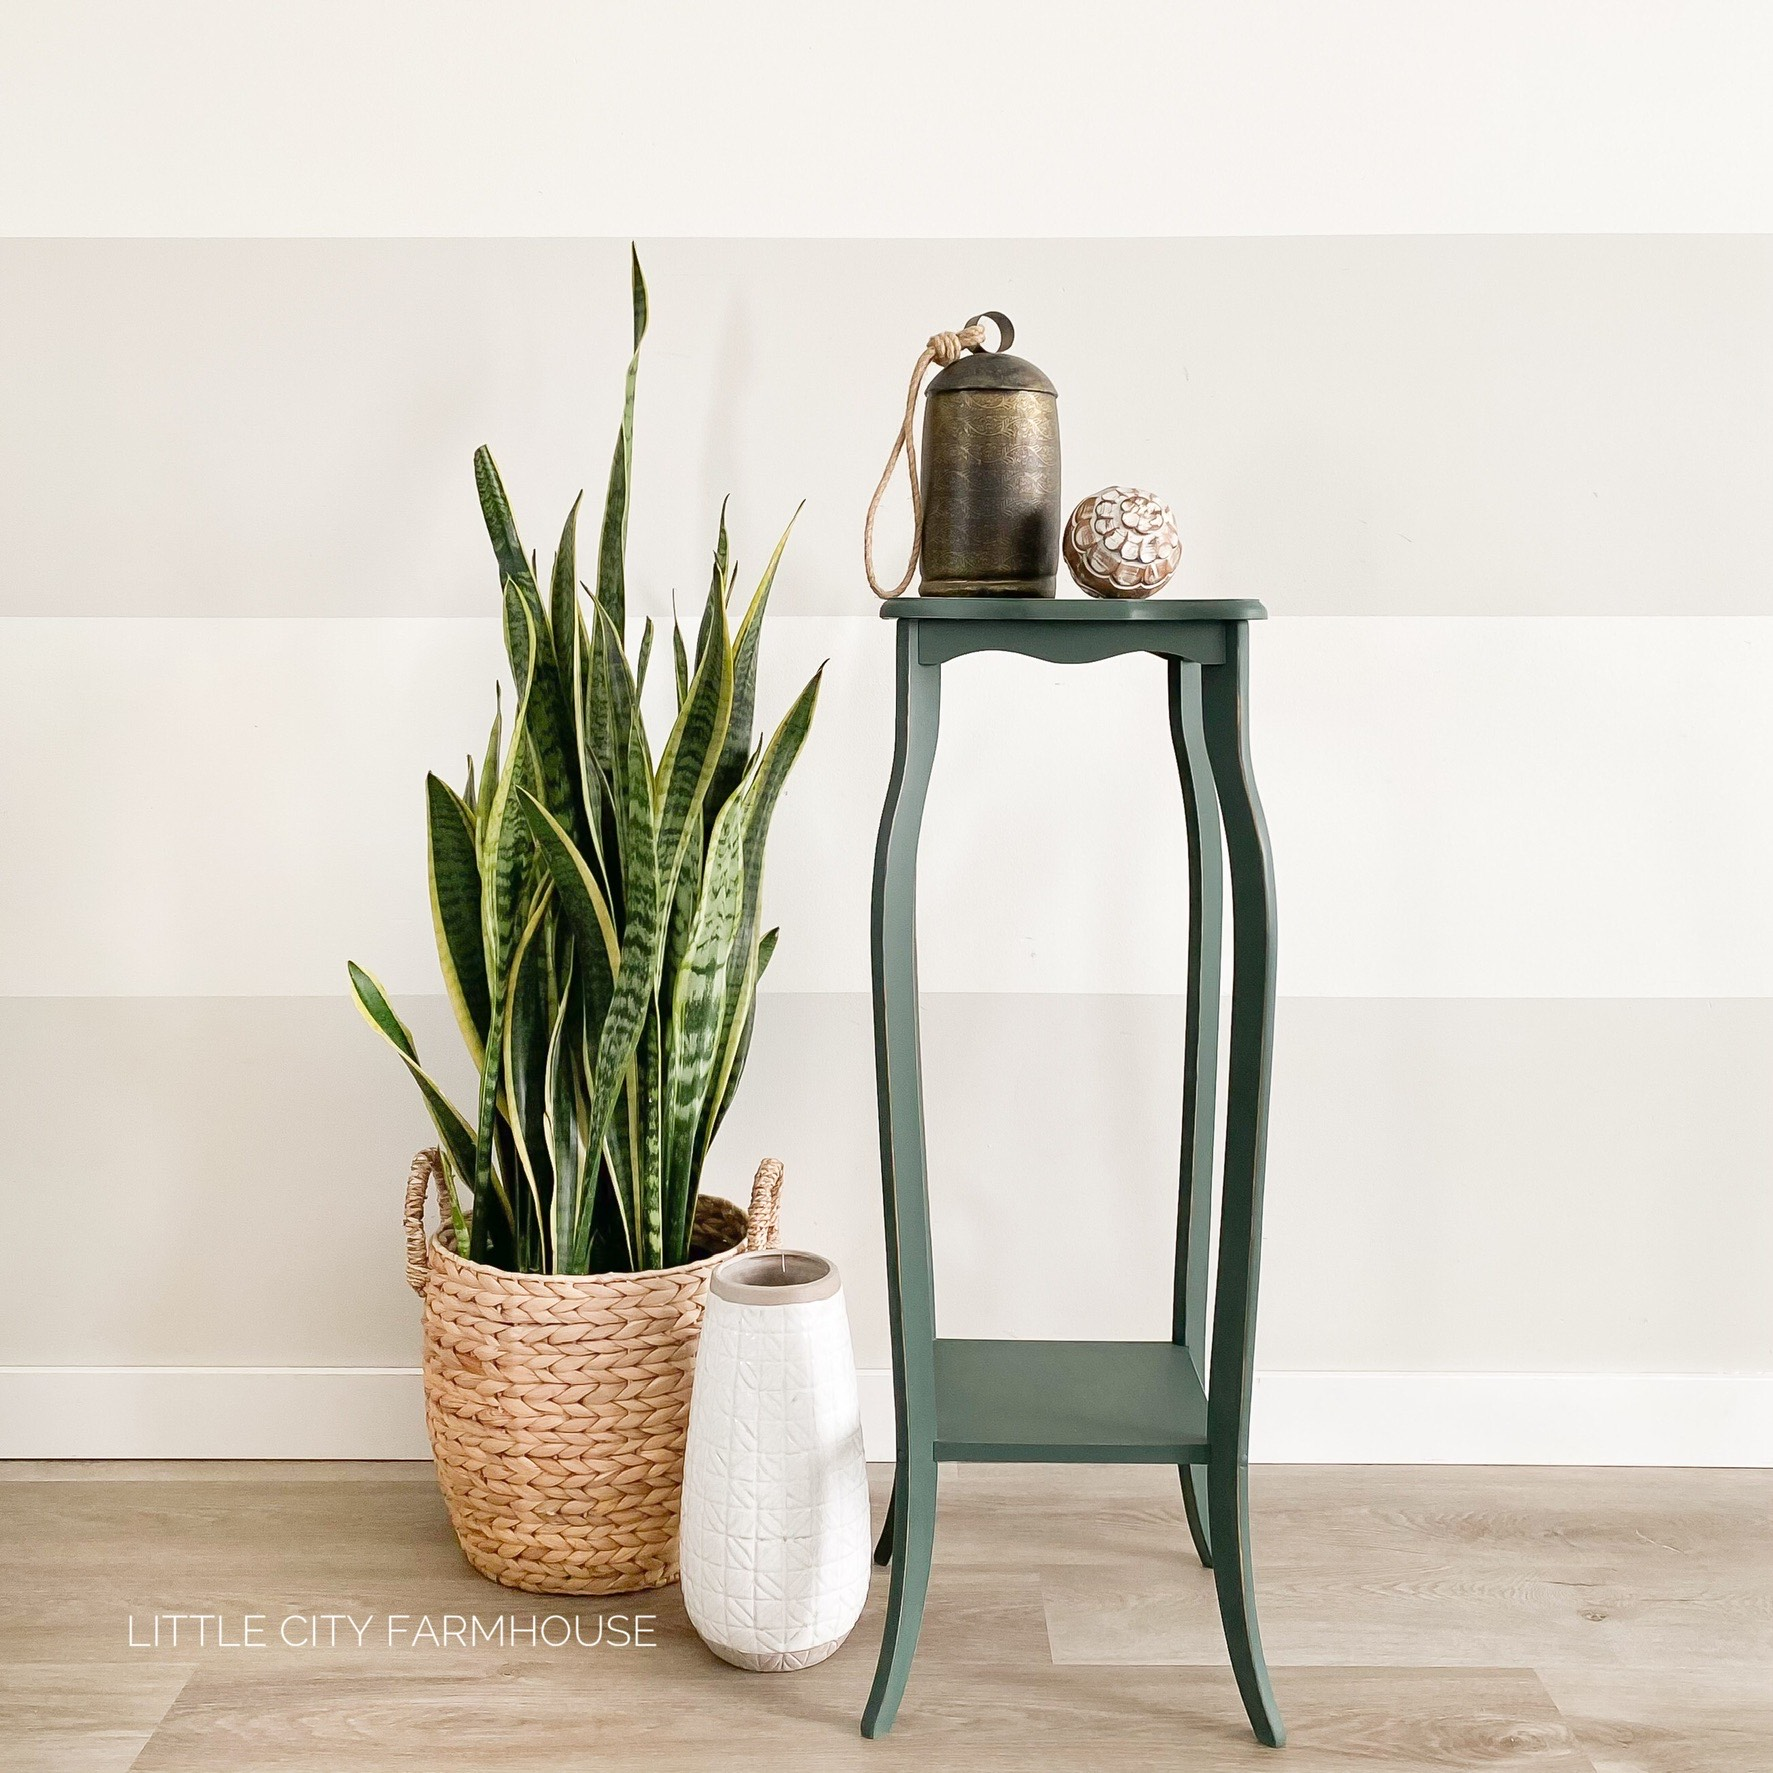 Decorative Table in Hollow Hill with plnat in wicker basket